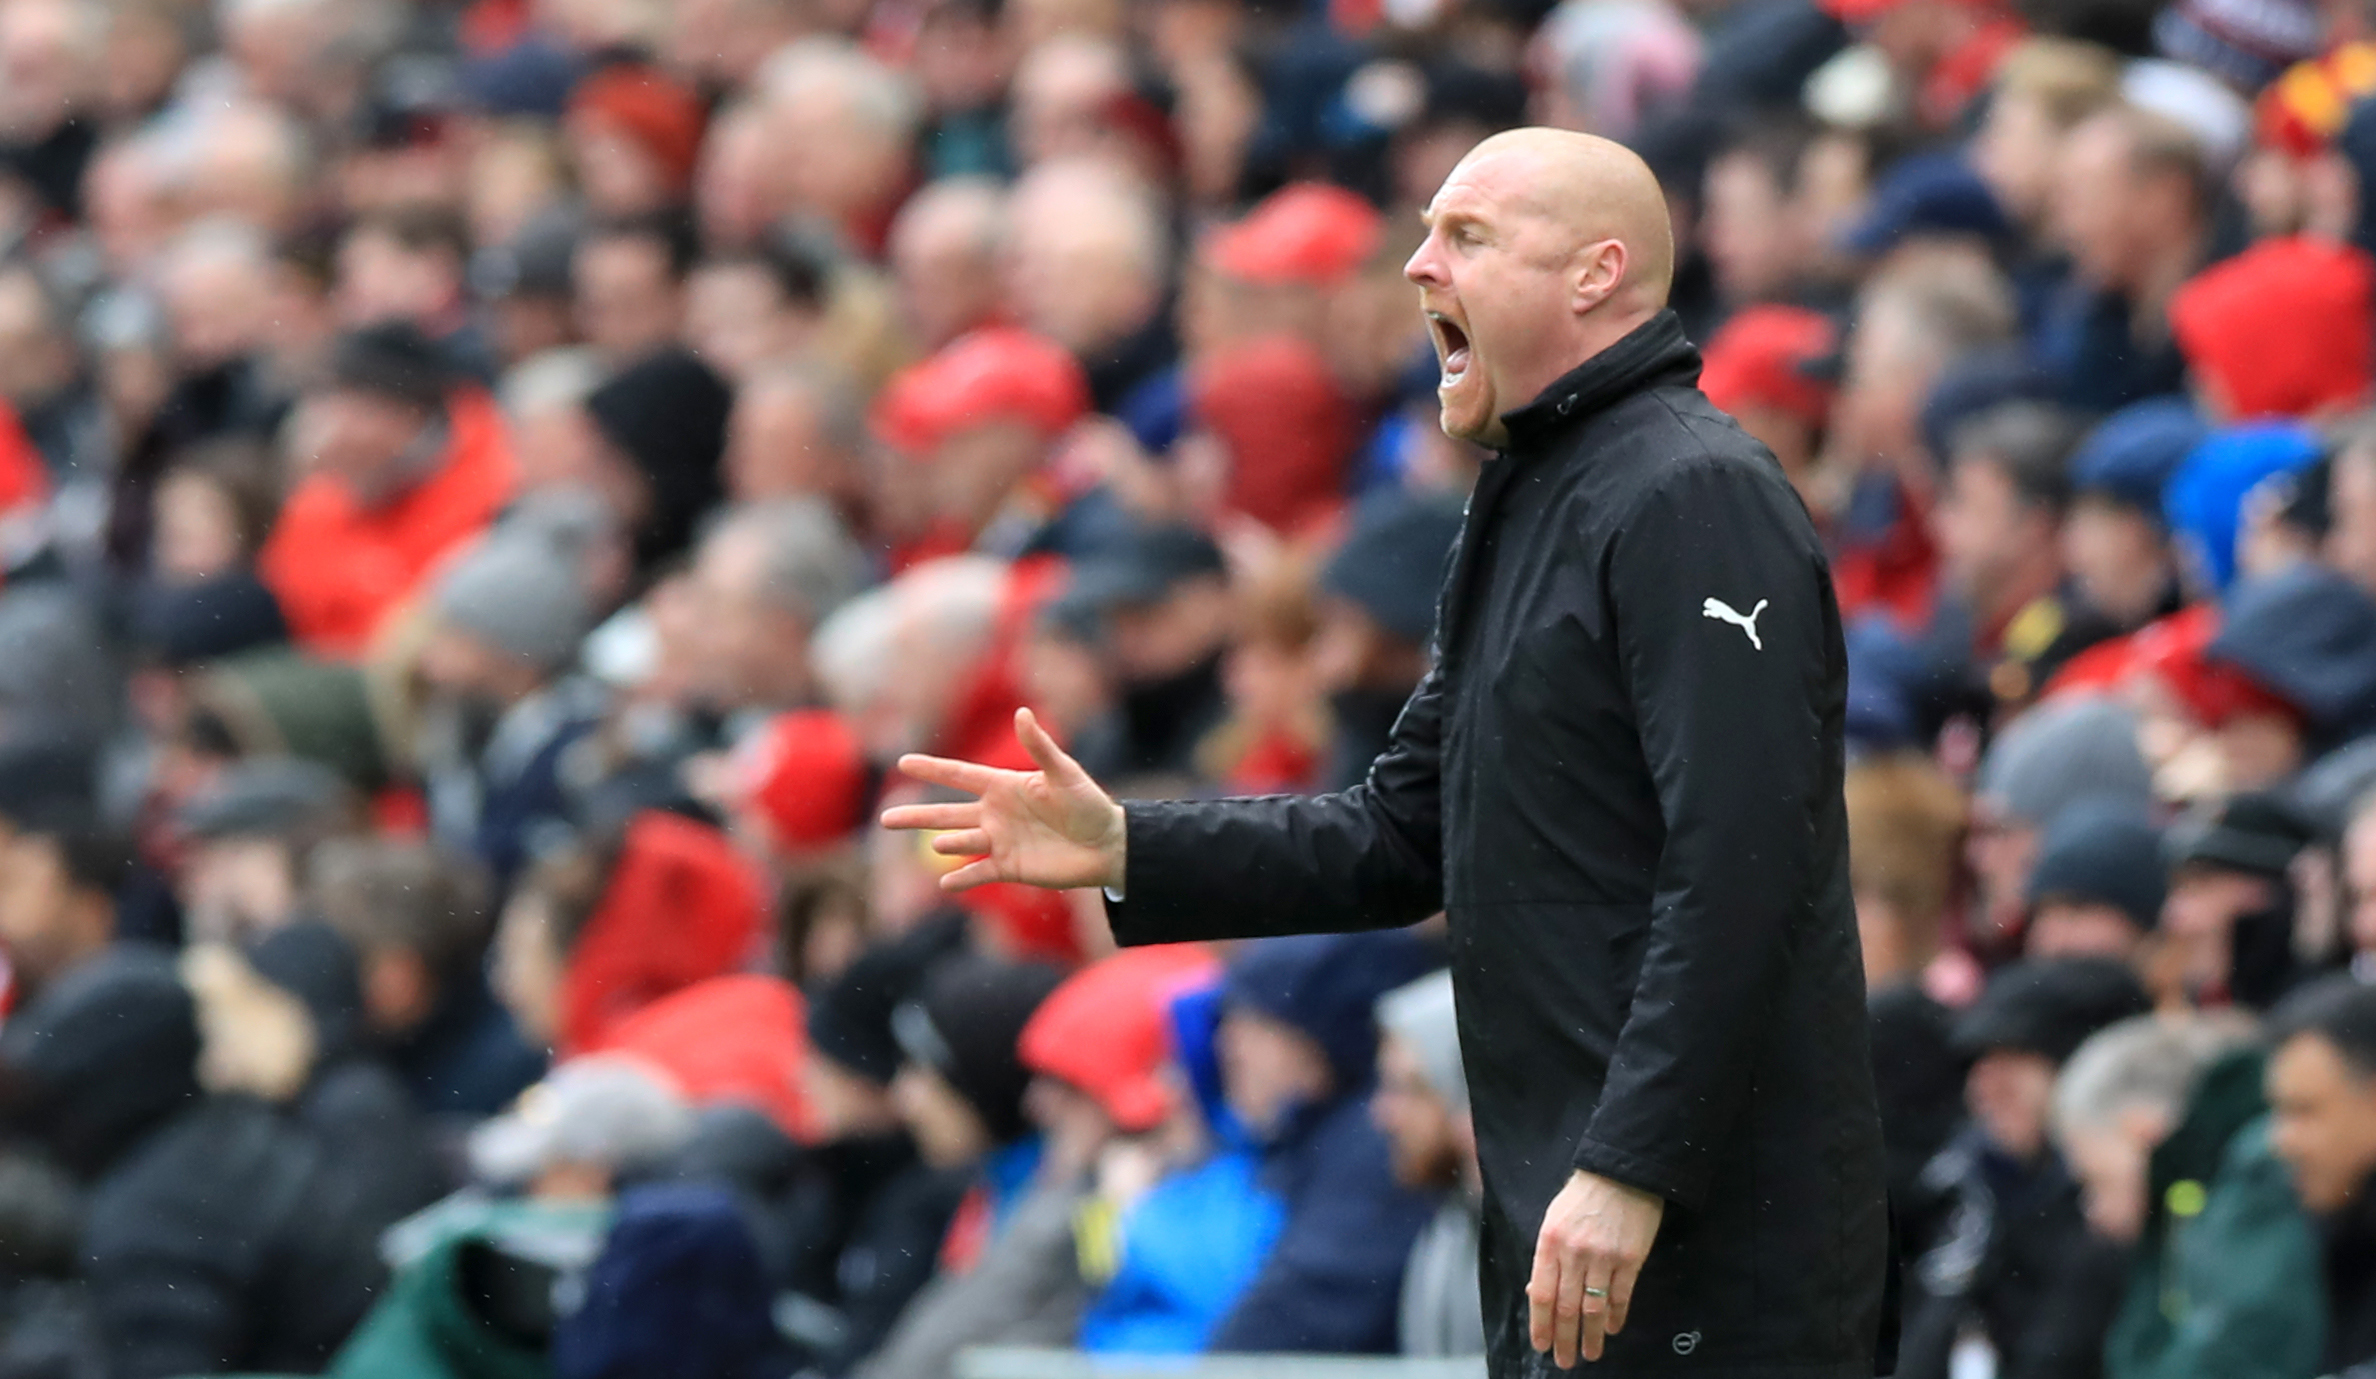 Burnley boss Sean Dyche says coaching is all about attention to detail and small gains both on and off the pitch to get the most out of players